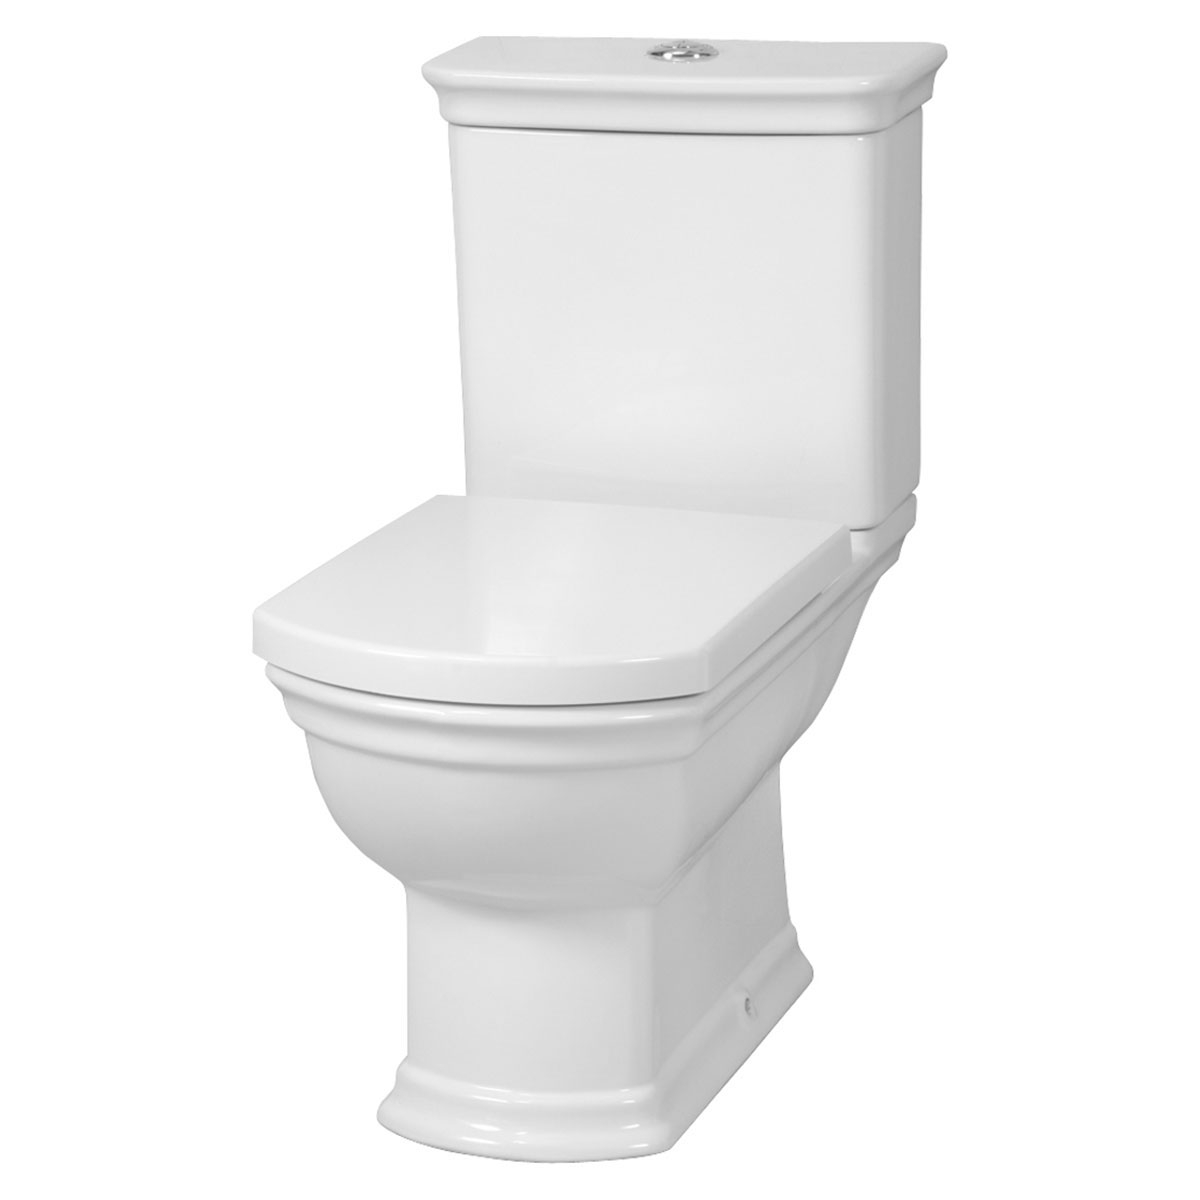 VitrA Serenada Value Suite Close Coupled Toilet 2 Tap Hole Basin-2